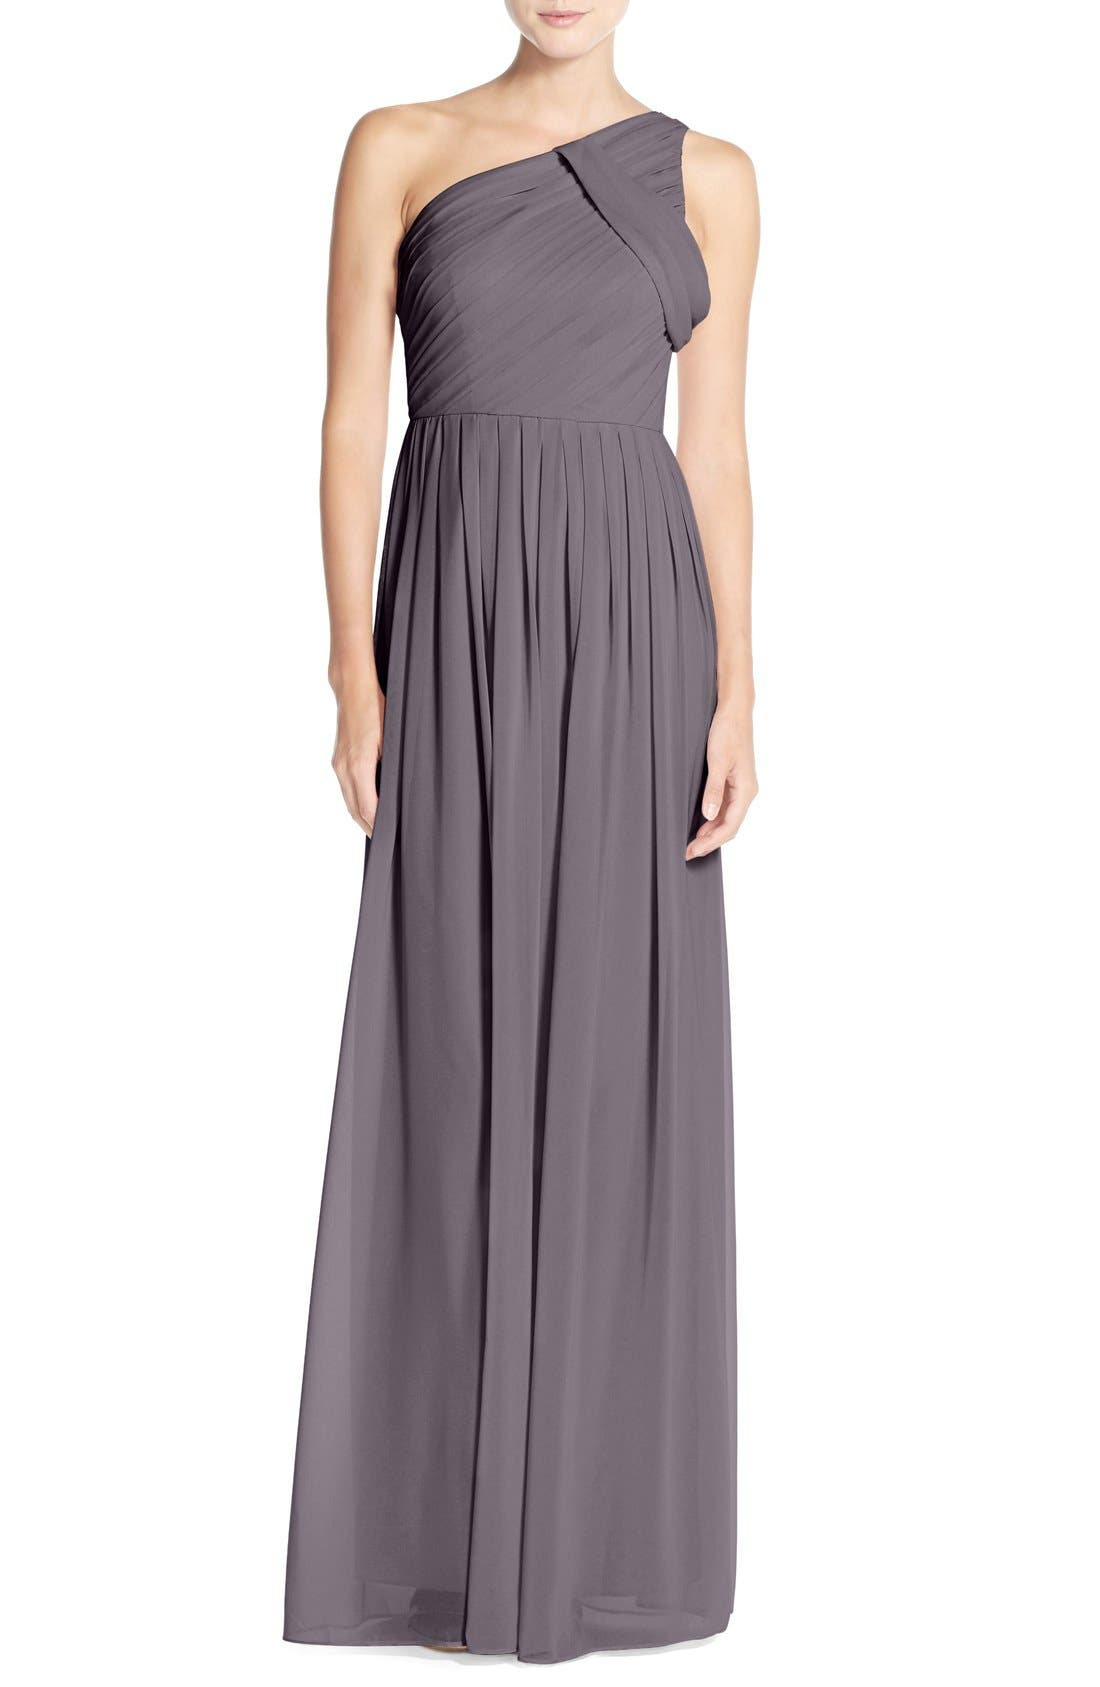 'Chloe' One-Shoulder Pleat Chiffon Gown,                             Main thumbnail 2, color,